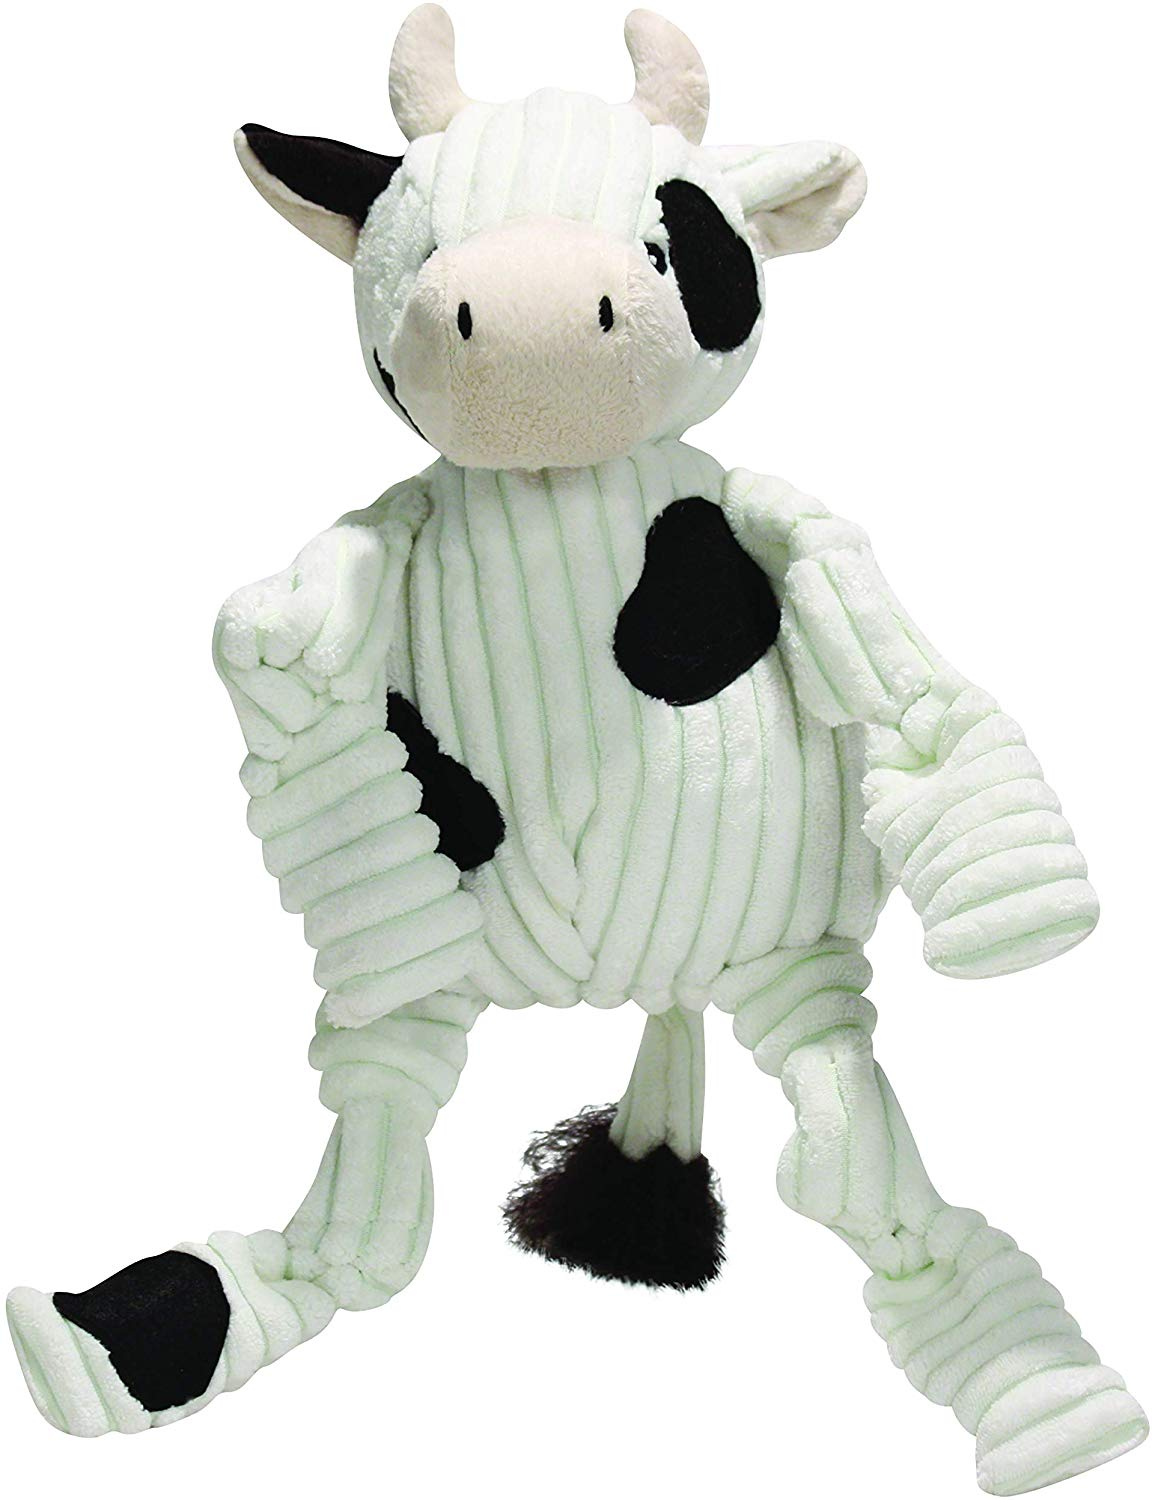 HuggleHounds Knottie Cow Dog Toy, Small